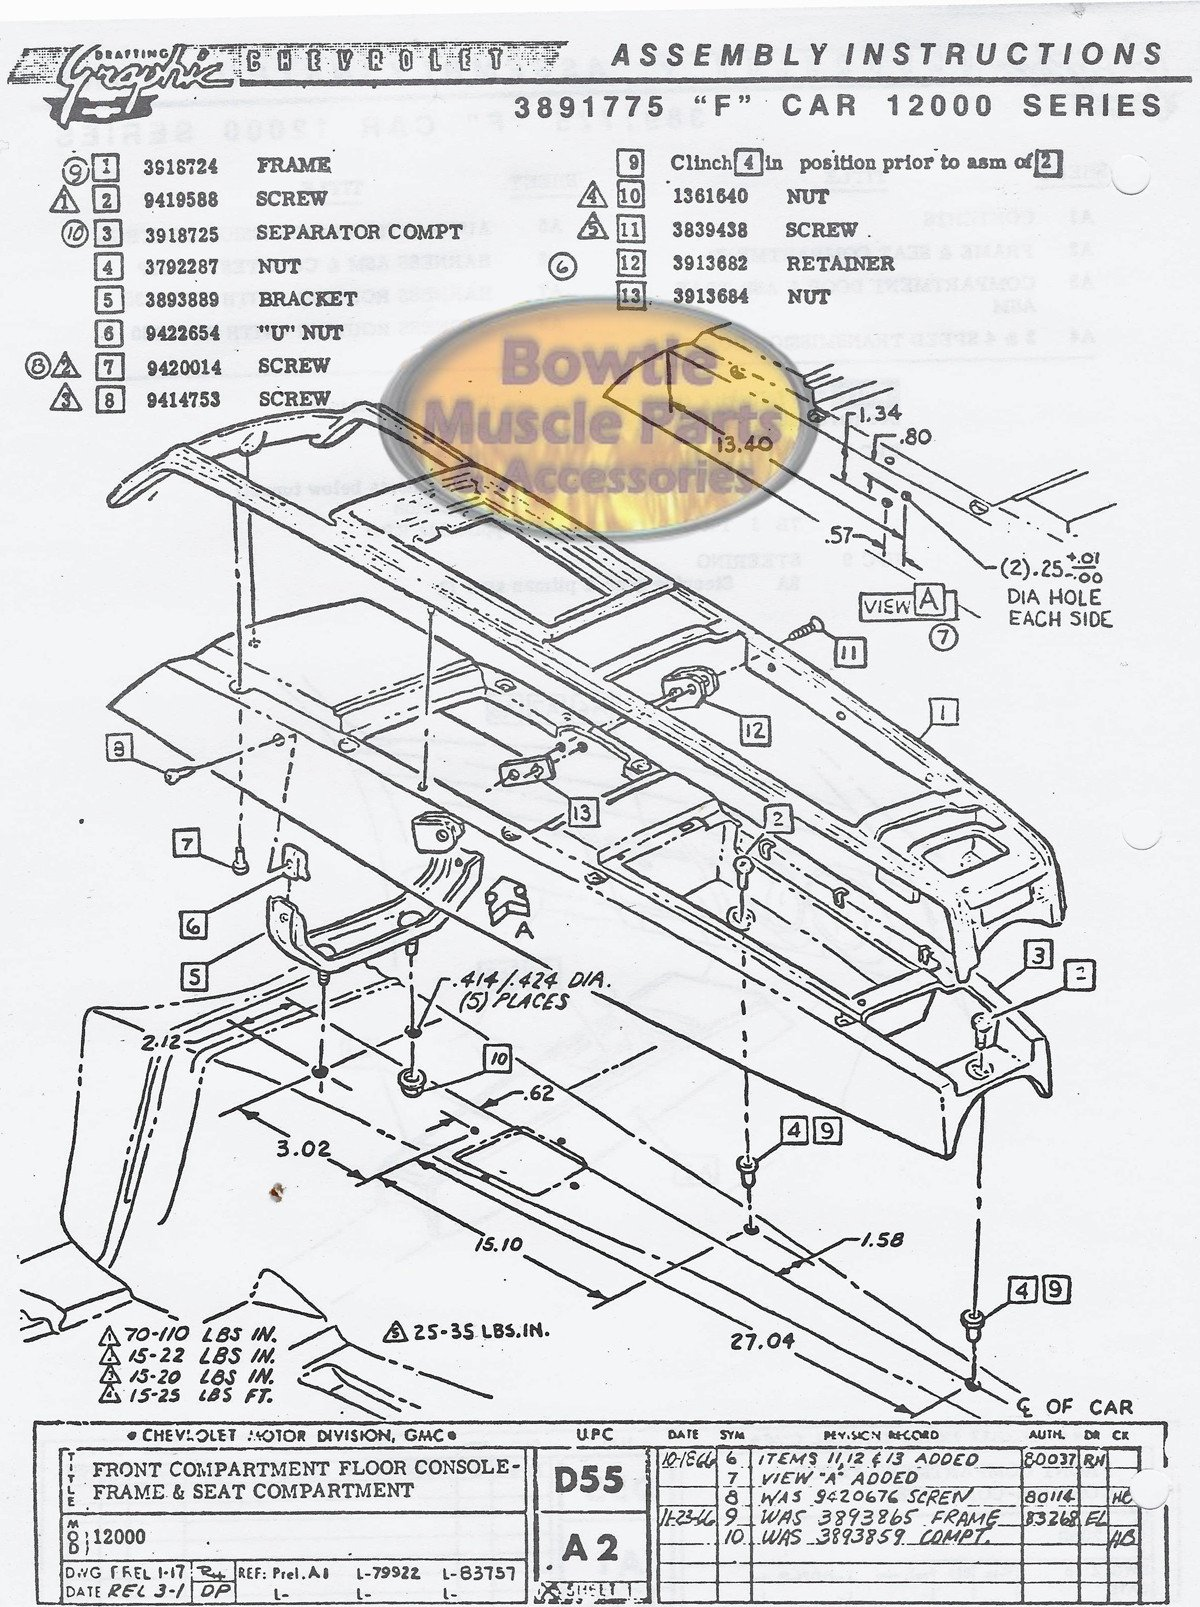 1969 camaro drawing at getdrawings free for personal use 1969 1969 Corvette Radio Wiring Diagram 1200x1607 1969 69 camaro factory assembly manual z28 ss rs